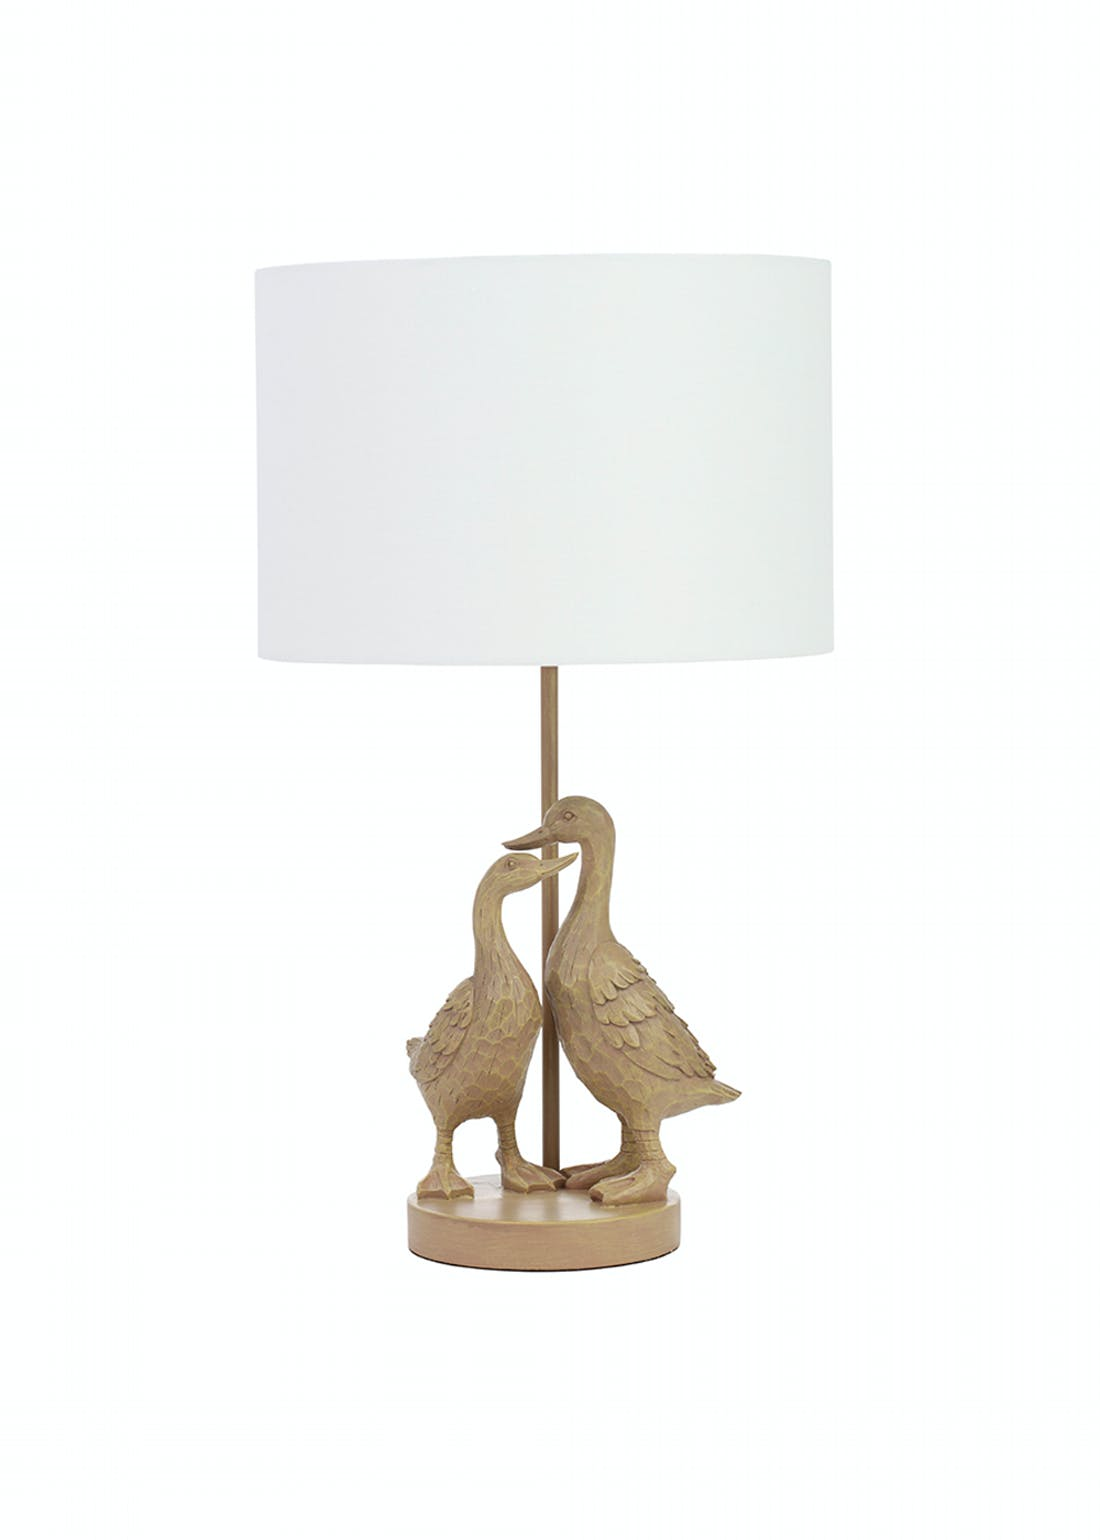 Duck Table Lamp (50cm x 30cm)